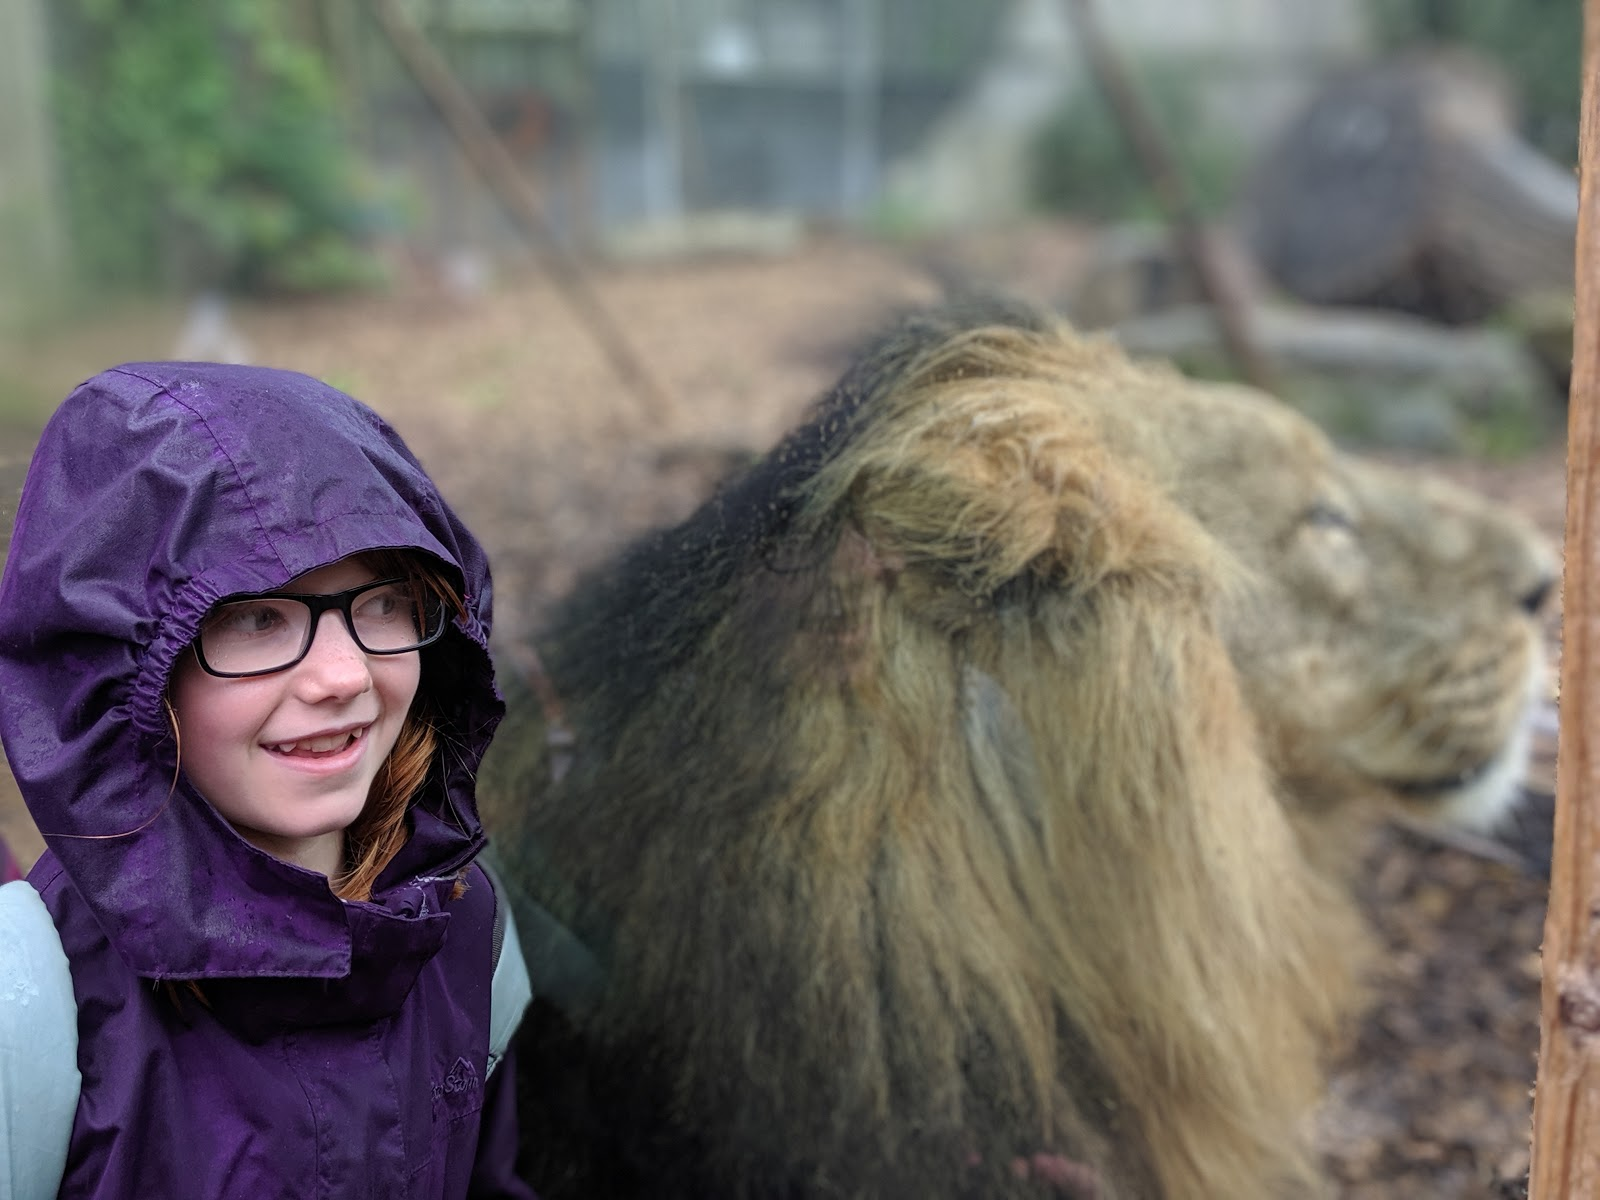 Exploring the Southern Merlin Theme Parks with Tweens  - Lions at Chessington